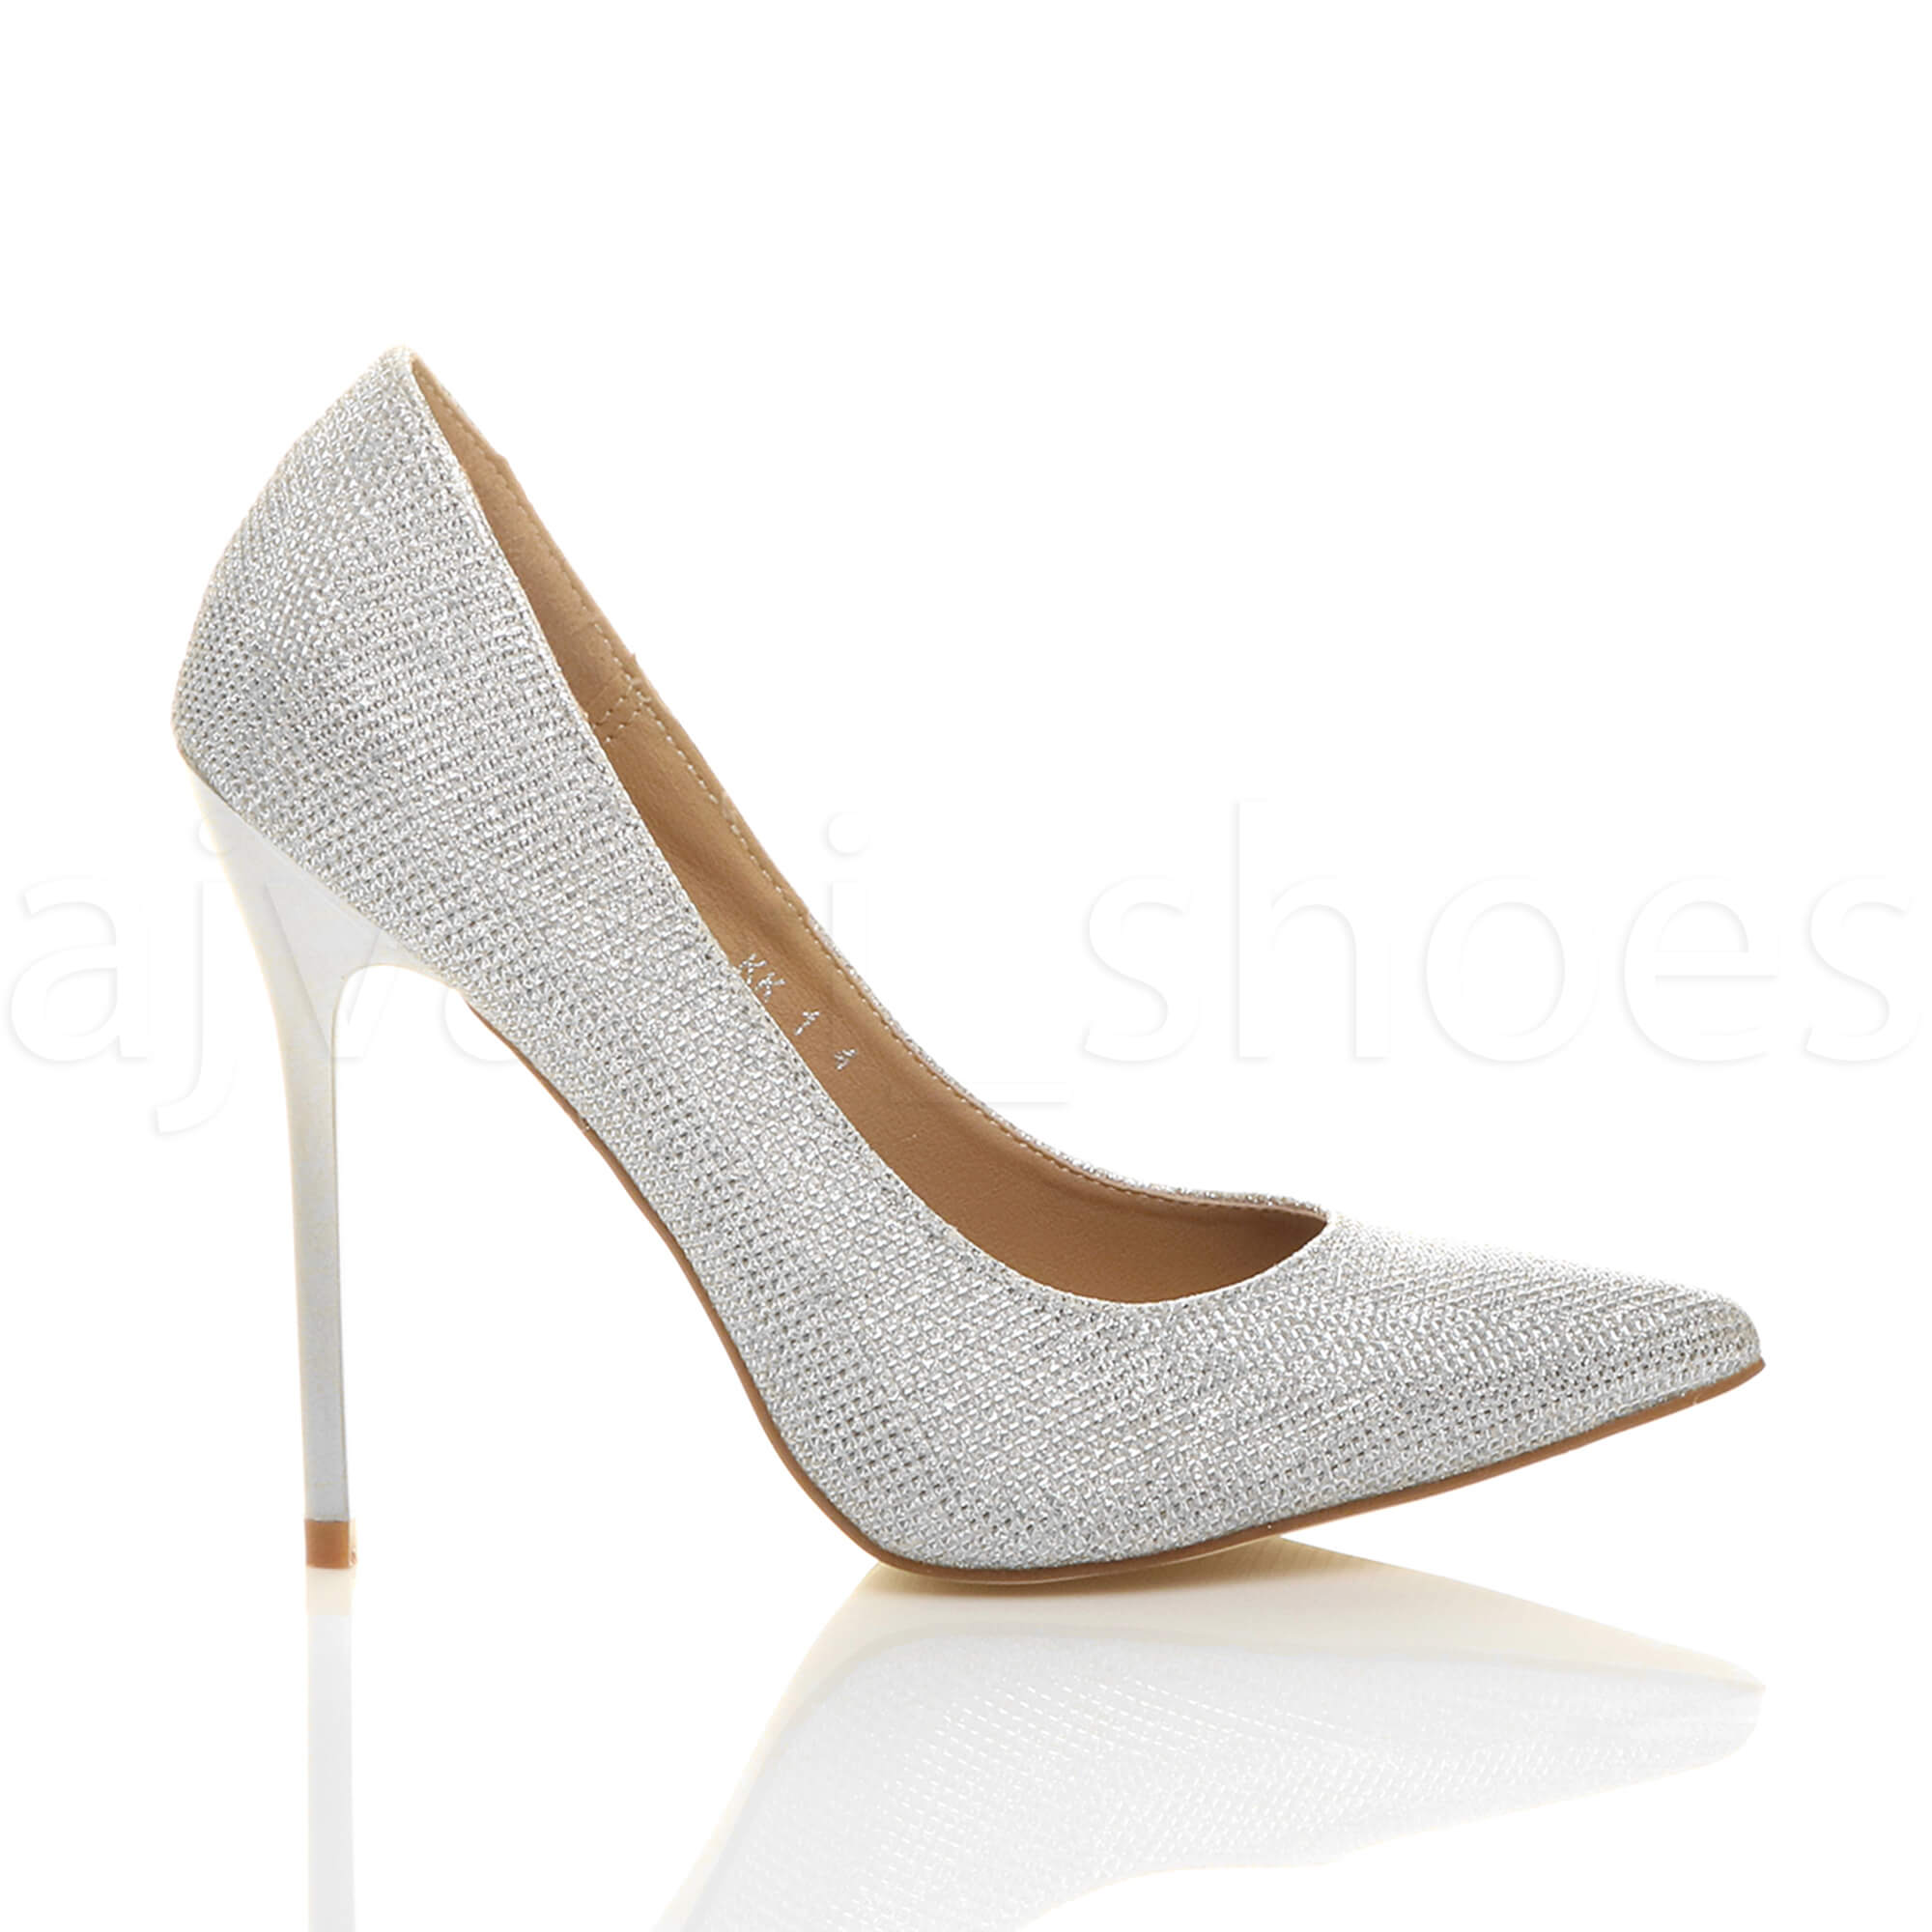 WOMENS-LADIES-HIGH-HEEL-POINTED-CONTRAST-COURT-SMART-PARTY-WORK-SHOES-PUMPS-SIZE thumbnail 200